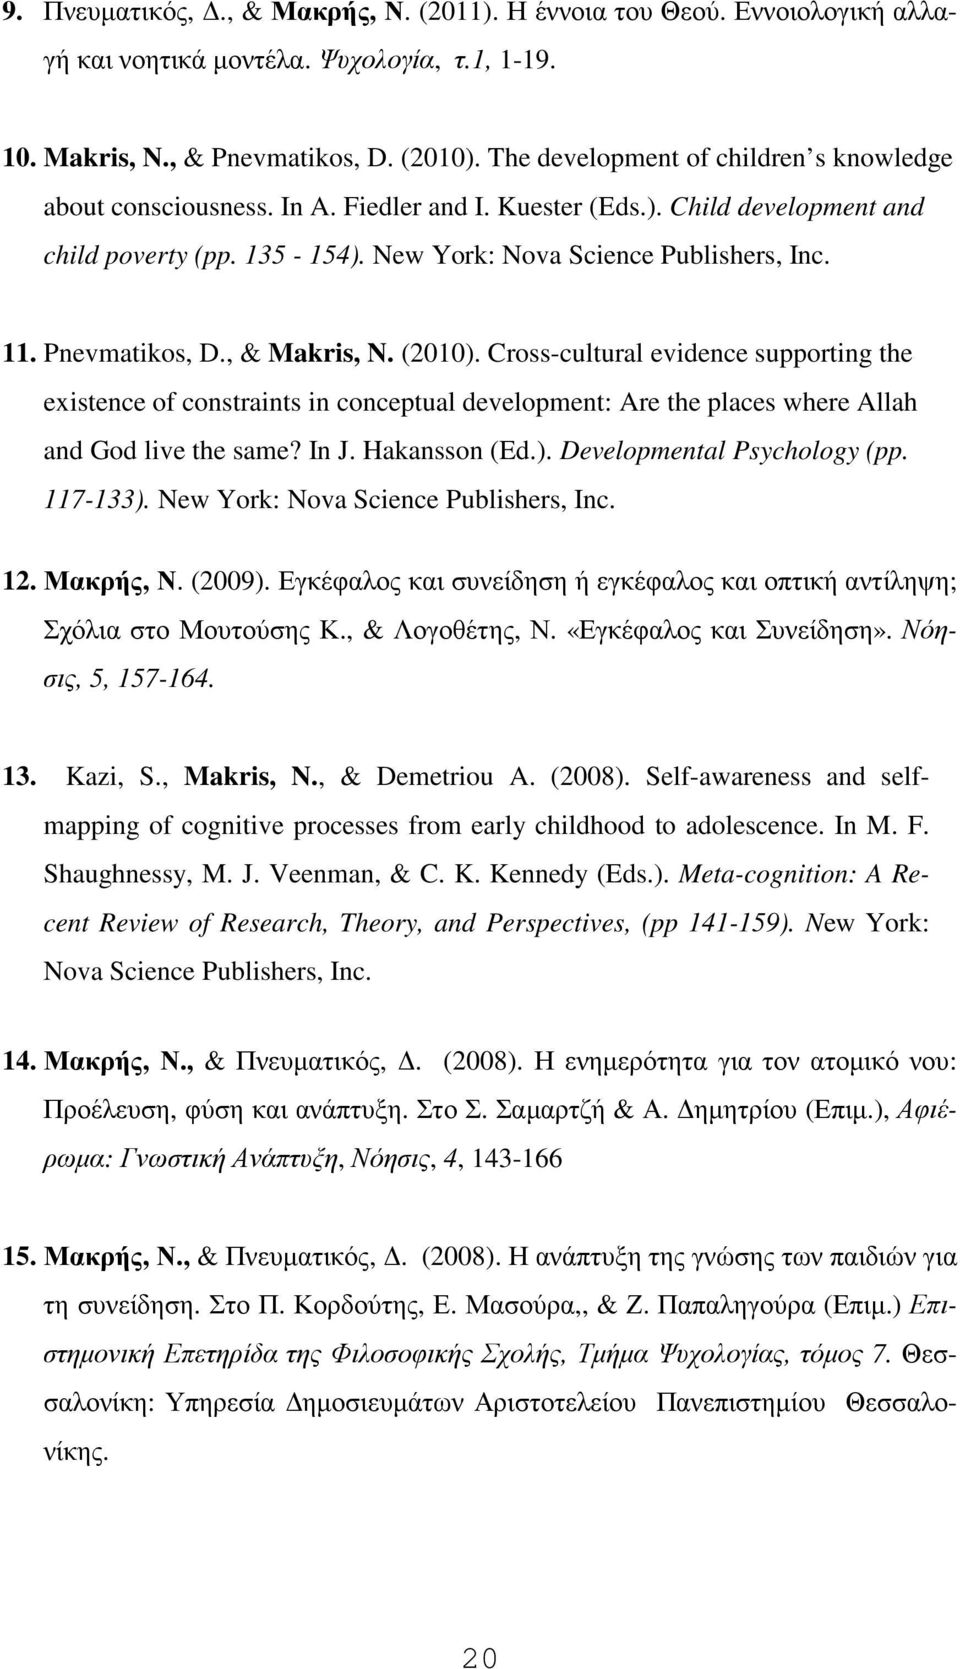 Pnevmatikos, D., & Makris, N. (2010). Cross-cultural evidence supporting the existence of constraints in conceptual development: Are the places where Allah and God live the same? In J. Hakansson (Ed.